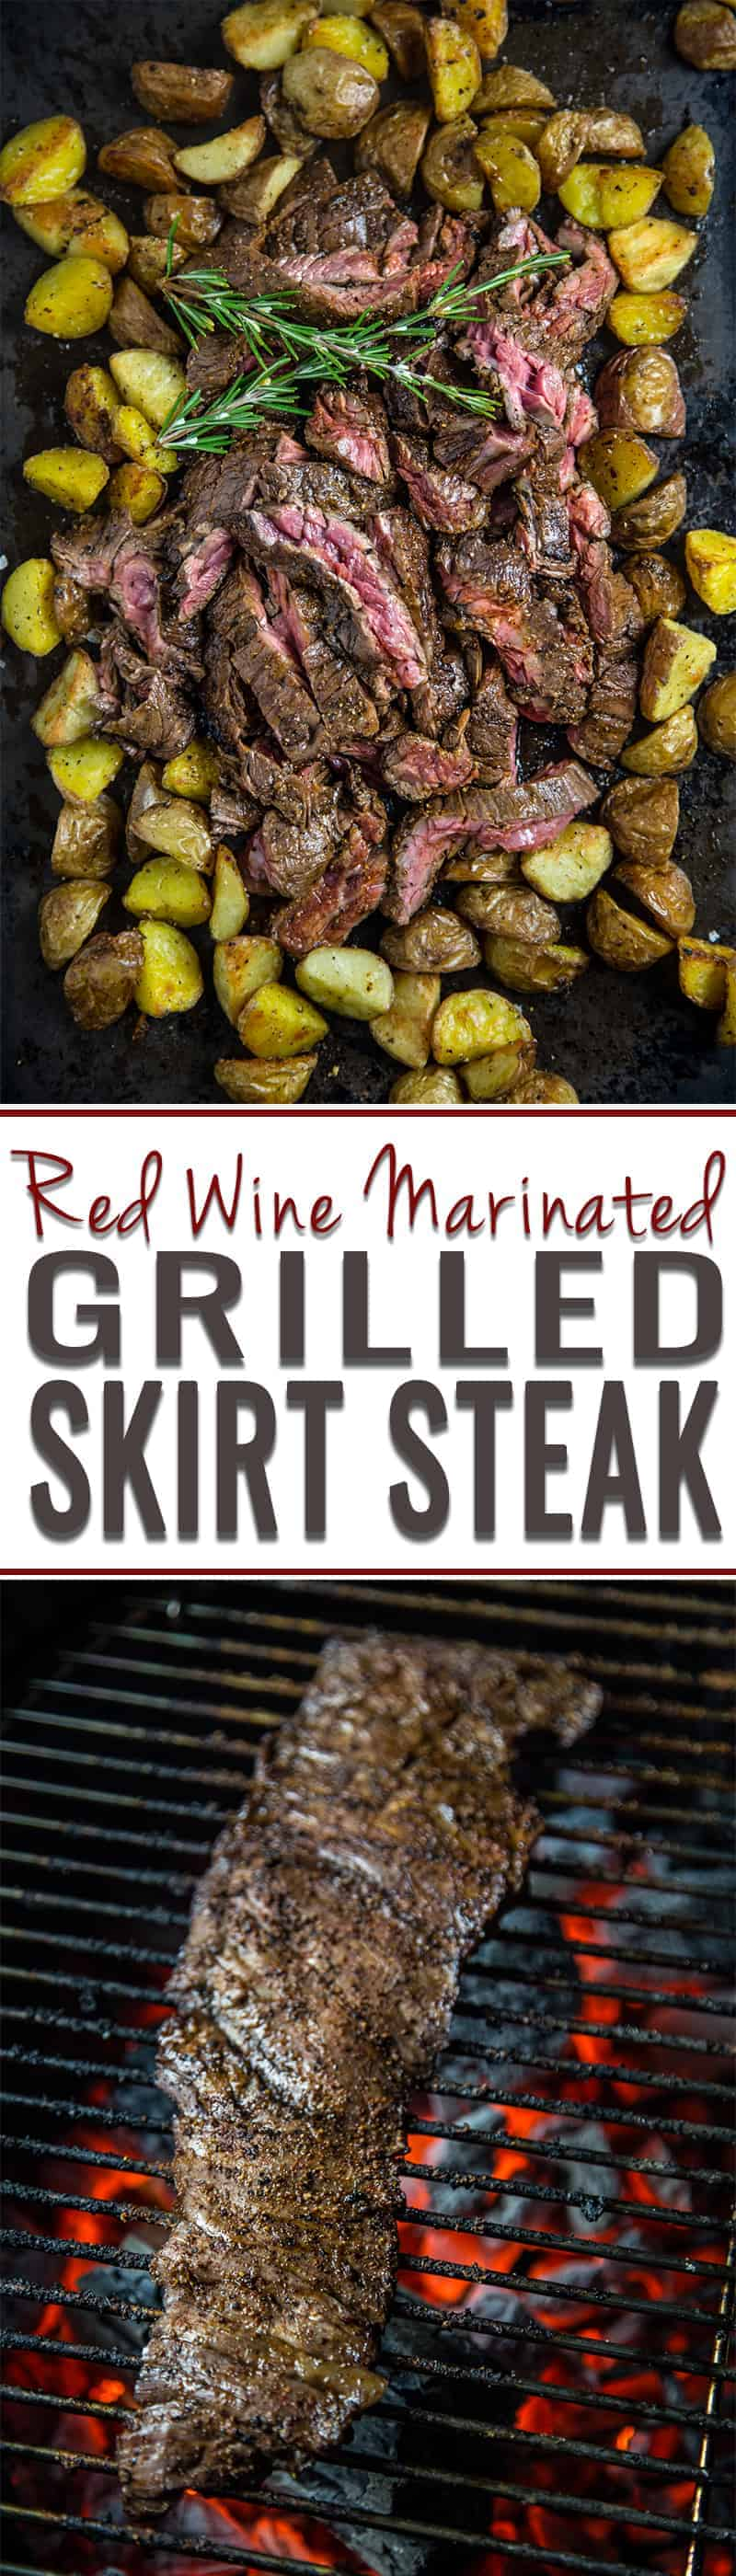 Red Wine Marinated Grilled Skirt Steak